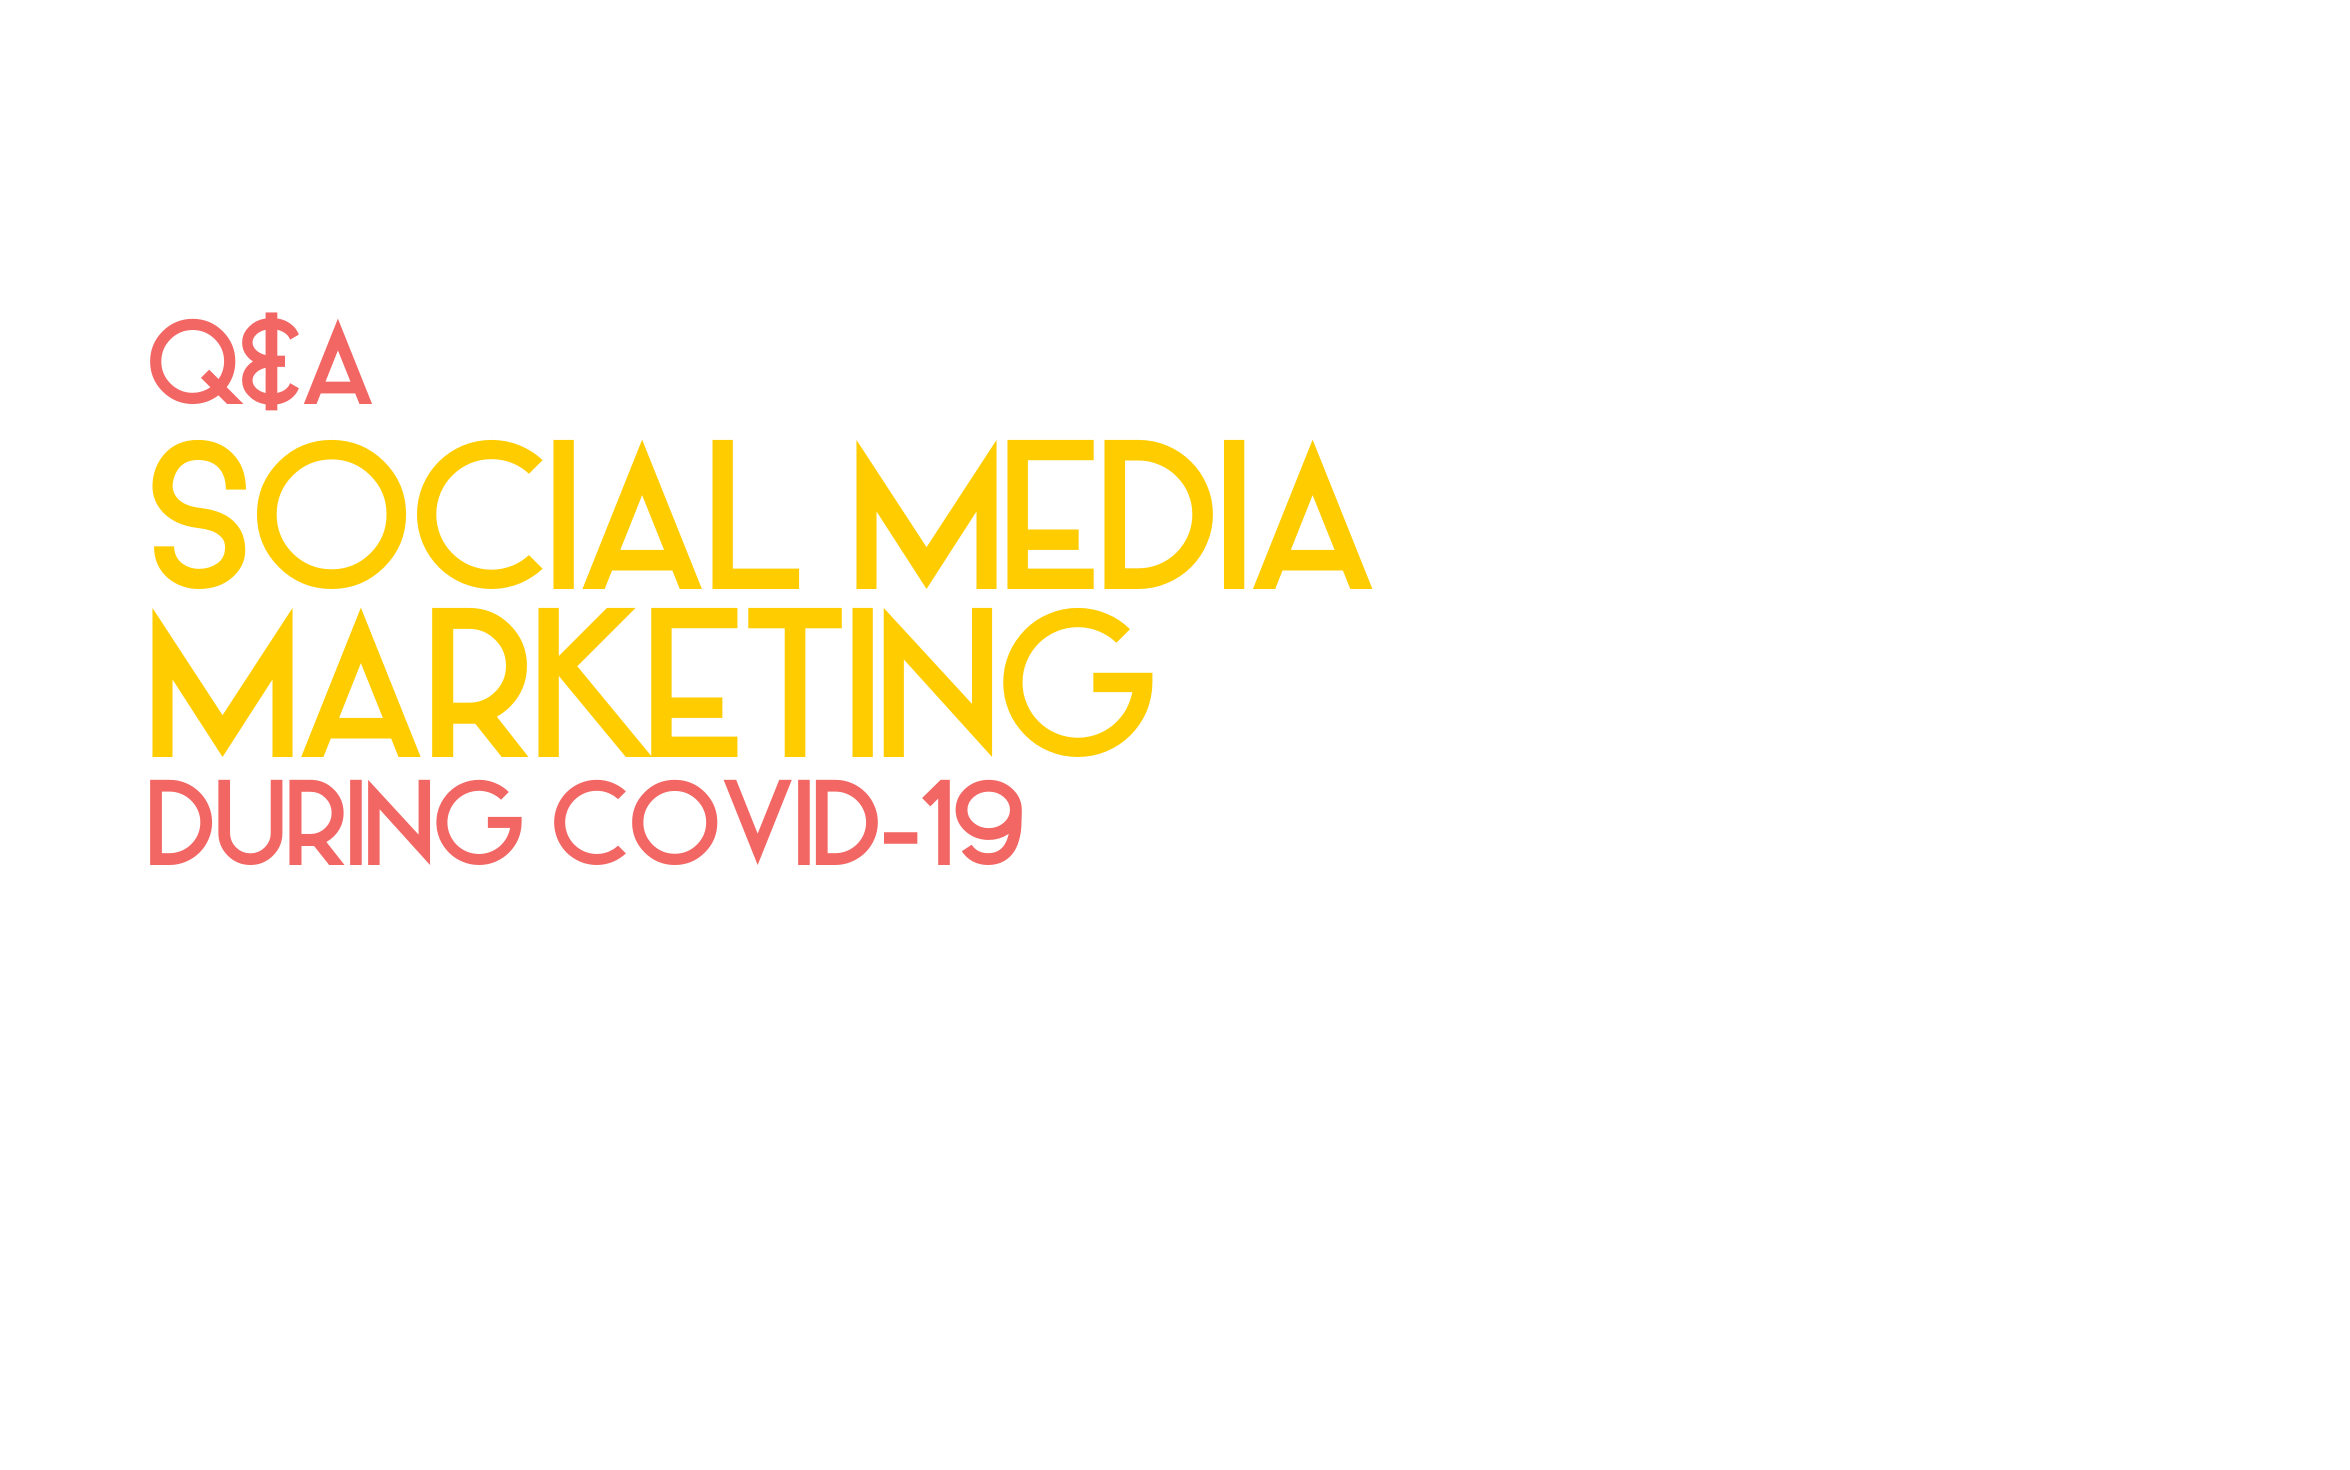 Q&A: What should you do with your social media marketing if your business is closed during the COVID pandemic?